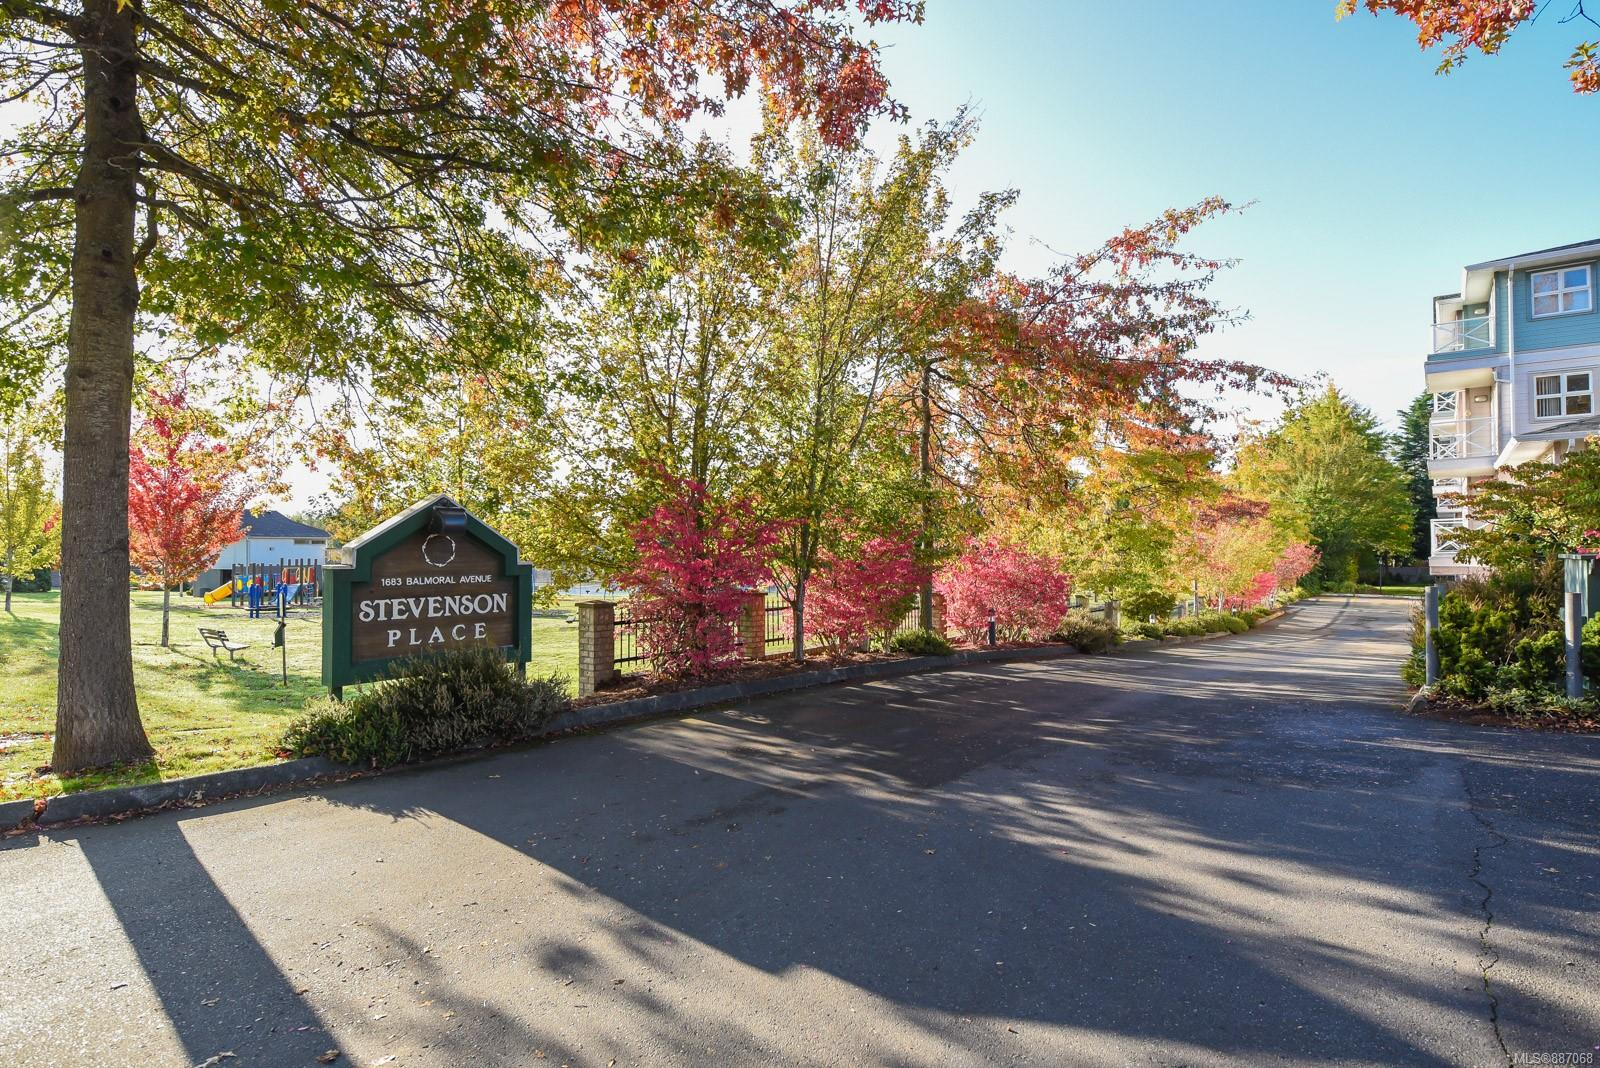 This bright 1 bedroom third floor unit has great access and is located beside the laundry facilities and elevator. If you are 55 and would still like some independence and supportive services then this is the place for you. Located in the heart of Comox you are within walking distance to all amenities like the Comox Mall, full-service grocery stores, restaurants and medical. Stevenson's place provides supportive services through Nova Pacific Care. These services include evening meals daily, weekly housekeeping and laundering of  sheets and towels, 24-hour on site staffing for security and response to emergencies. There is also a separate guest suite available for visitors to rent. Owners/tenants also have a air salon and secure parking available to them on site. One small dog or cat is allowed with approval.